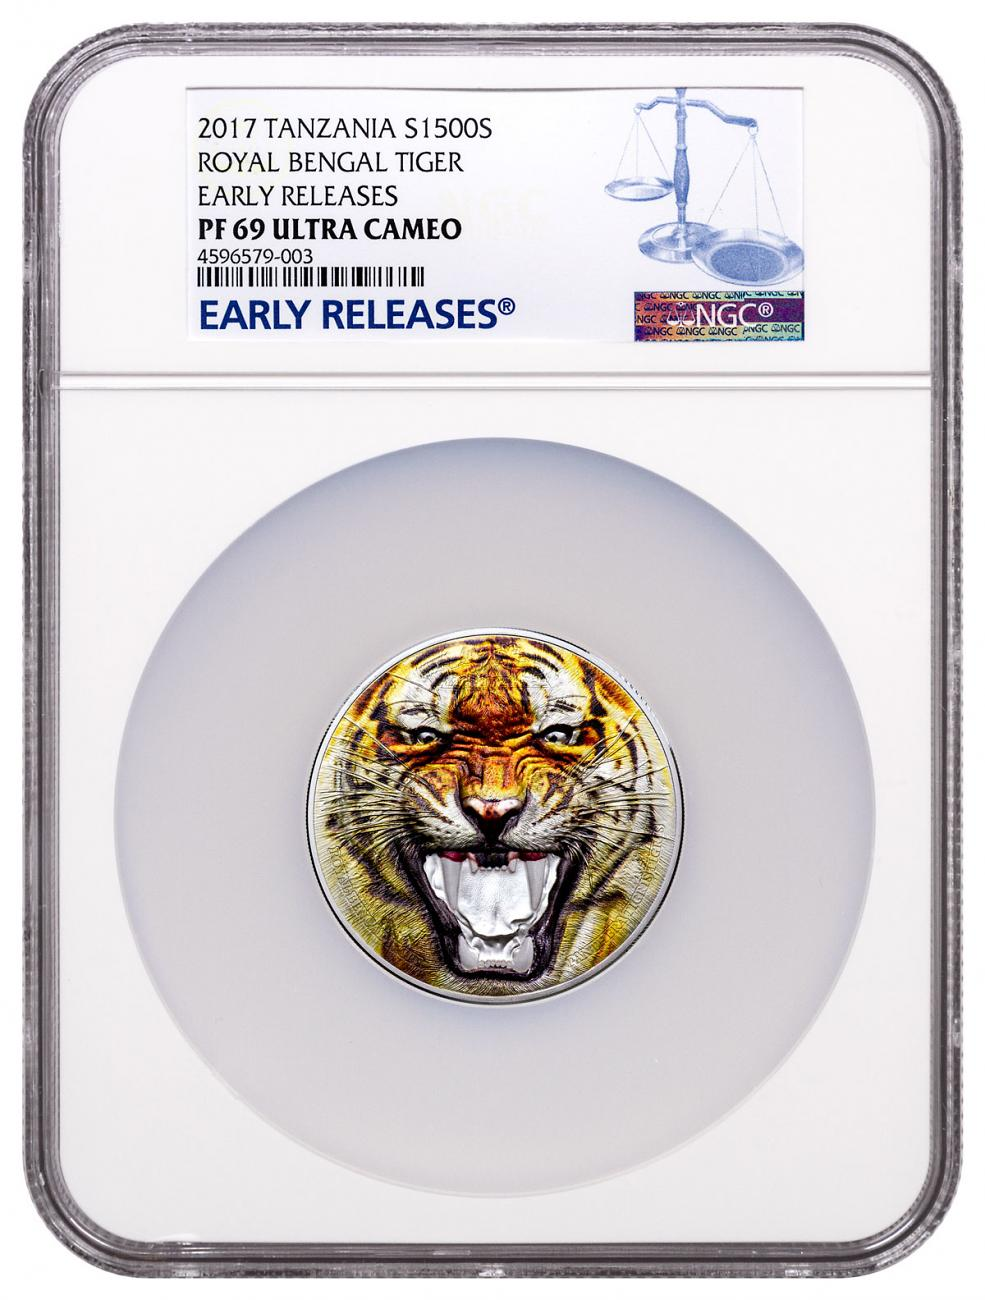 2017 Tanzania Rare Wildlife - Royal Bengal Tiger Ultra High Relief 2 oz Silver Colorized Proof Sh1,500 Coin NGC PF69 UC ER